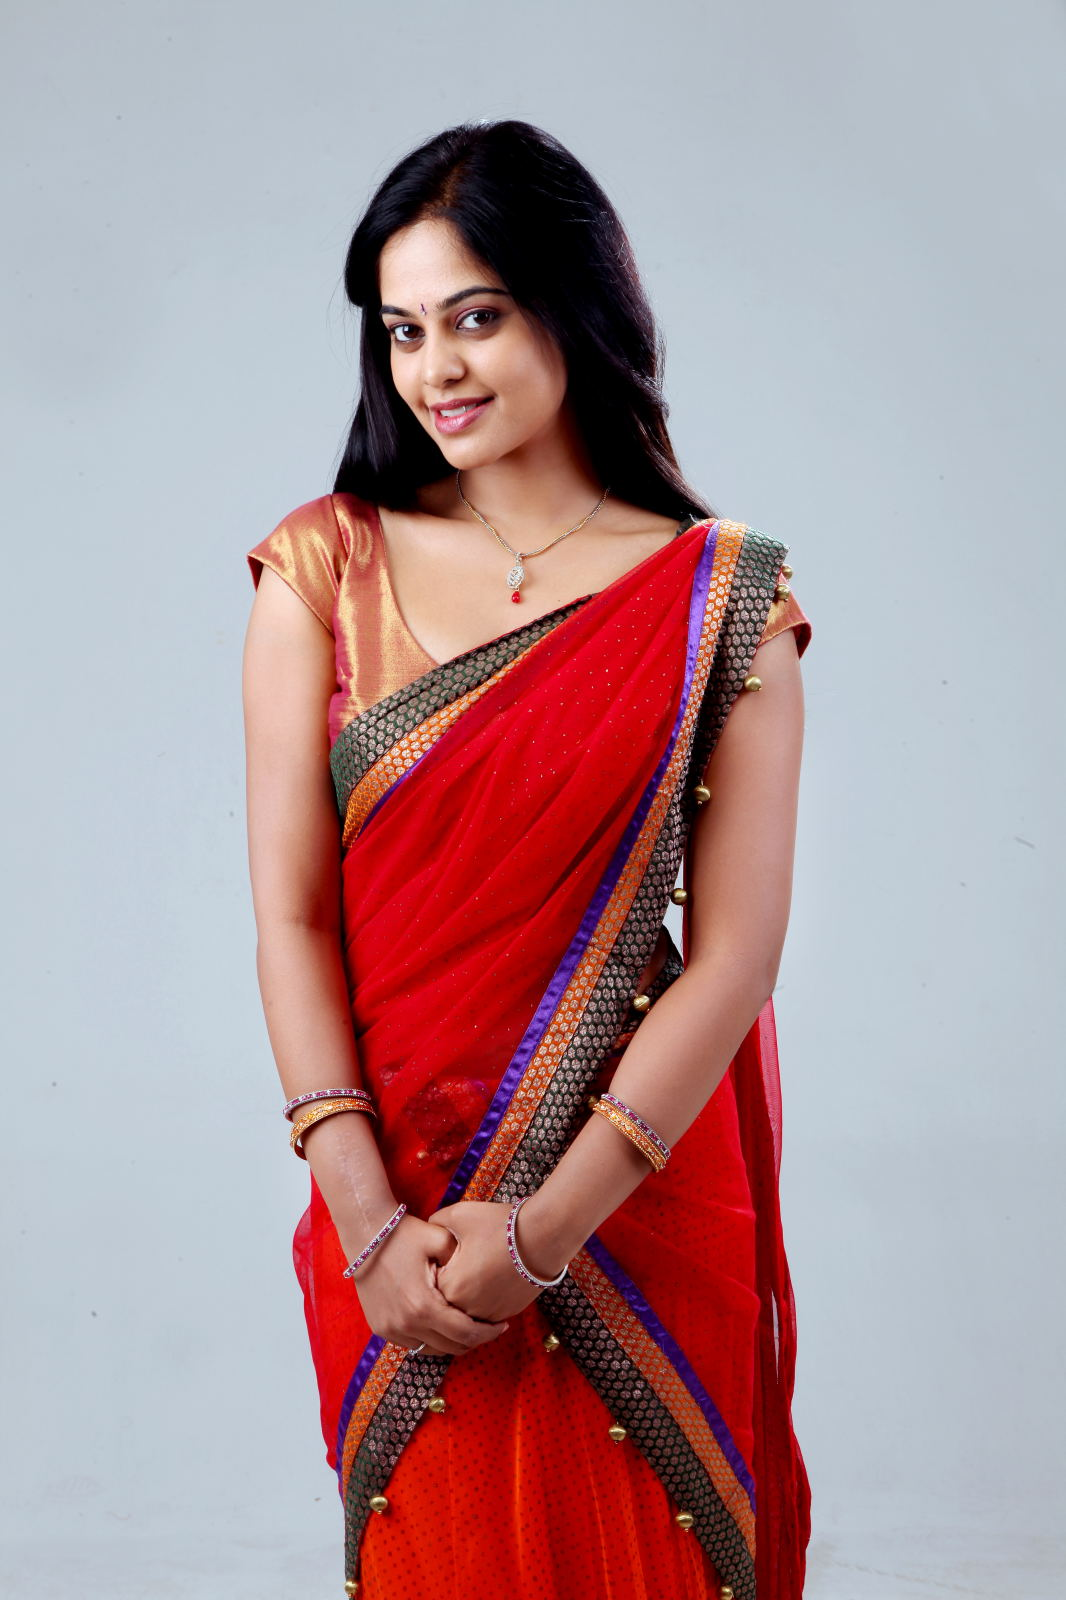 bindu madhavi new photos in saree